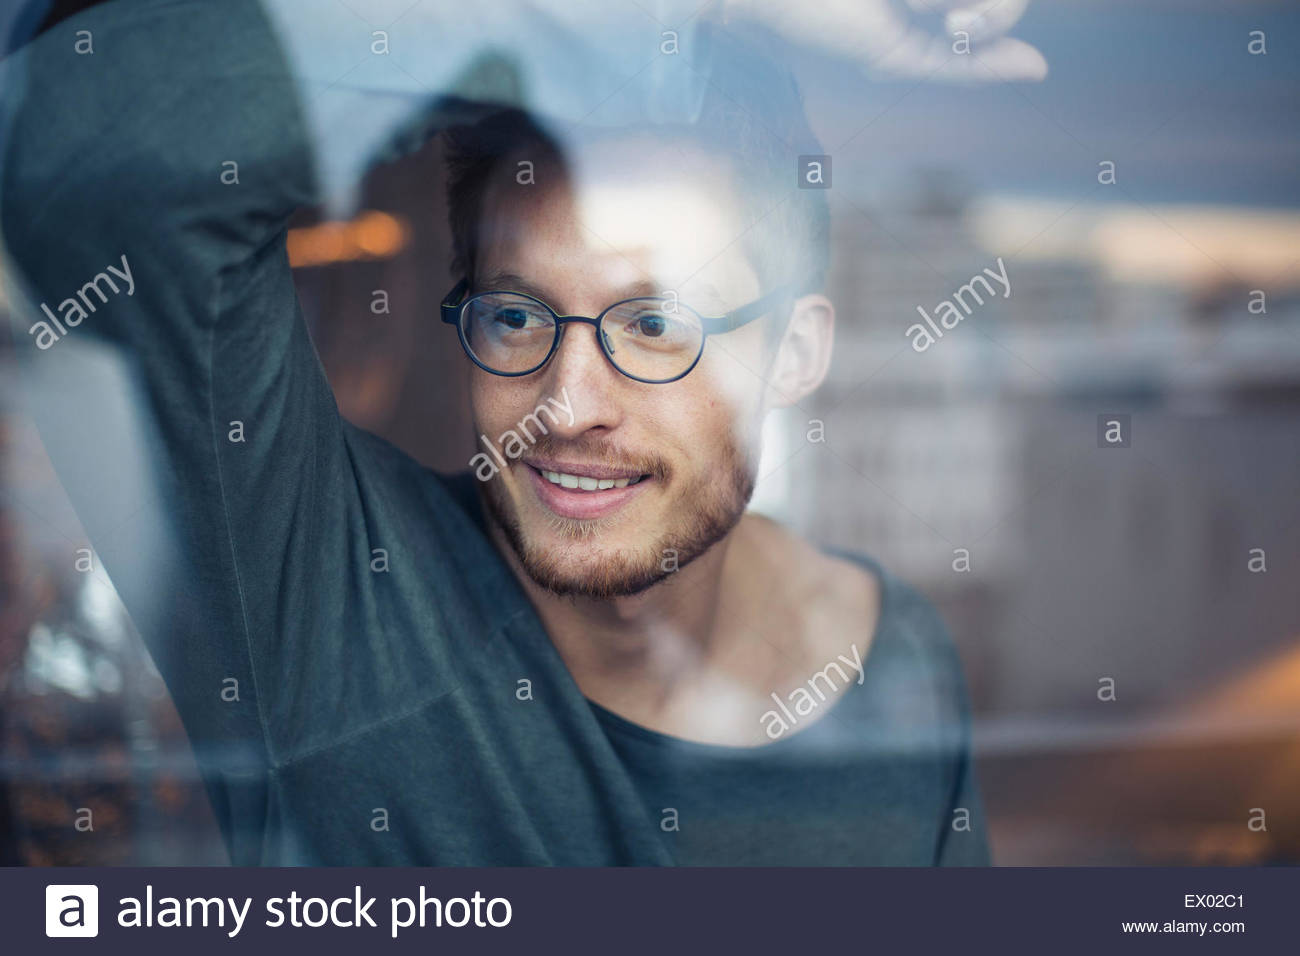 Young man looking out of window - Stock Image